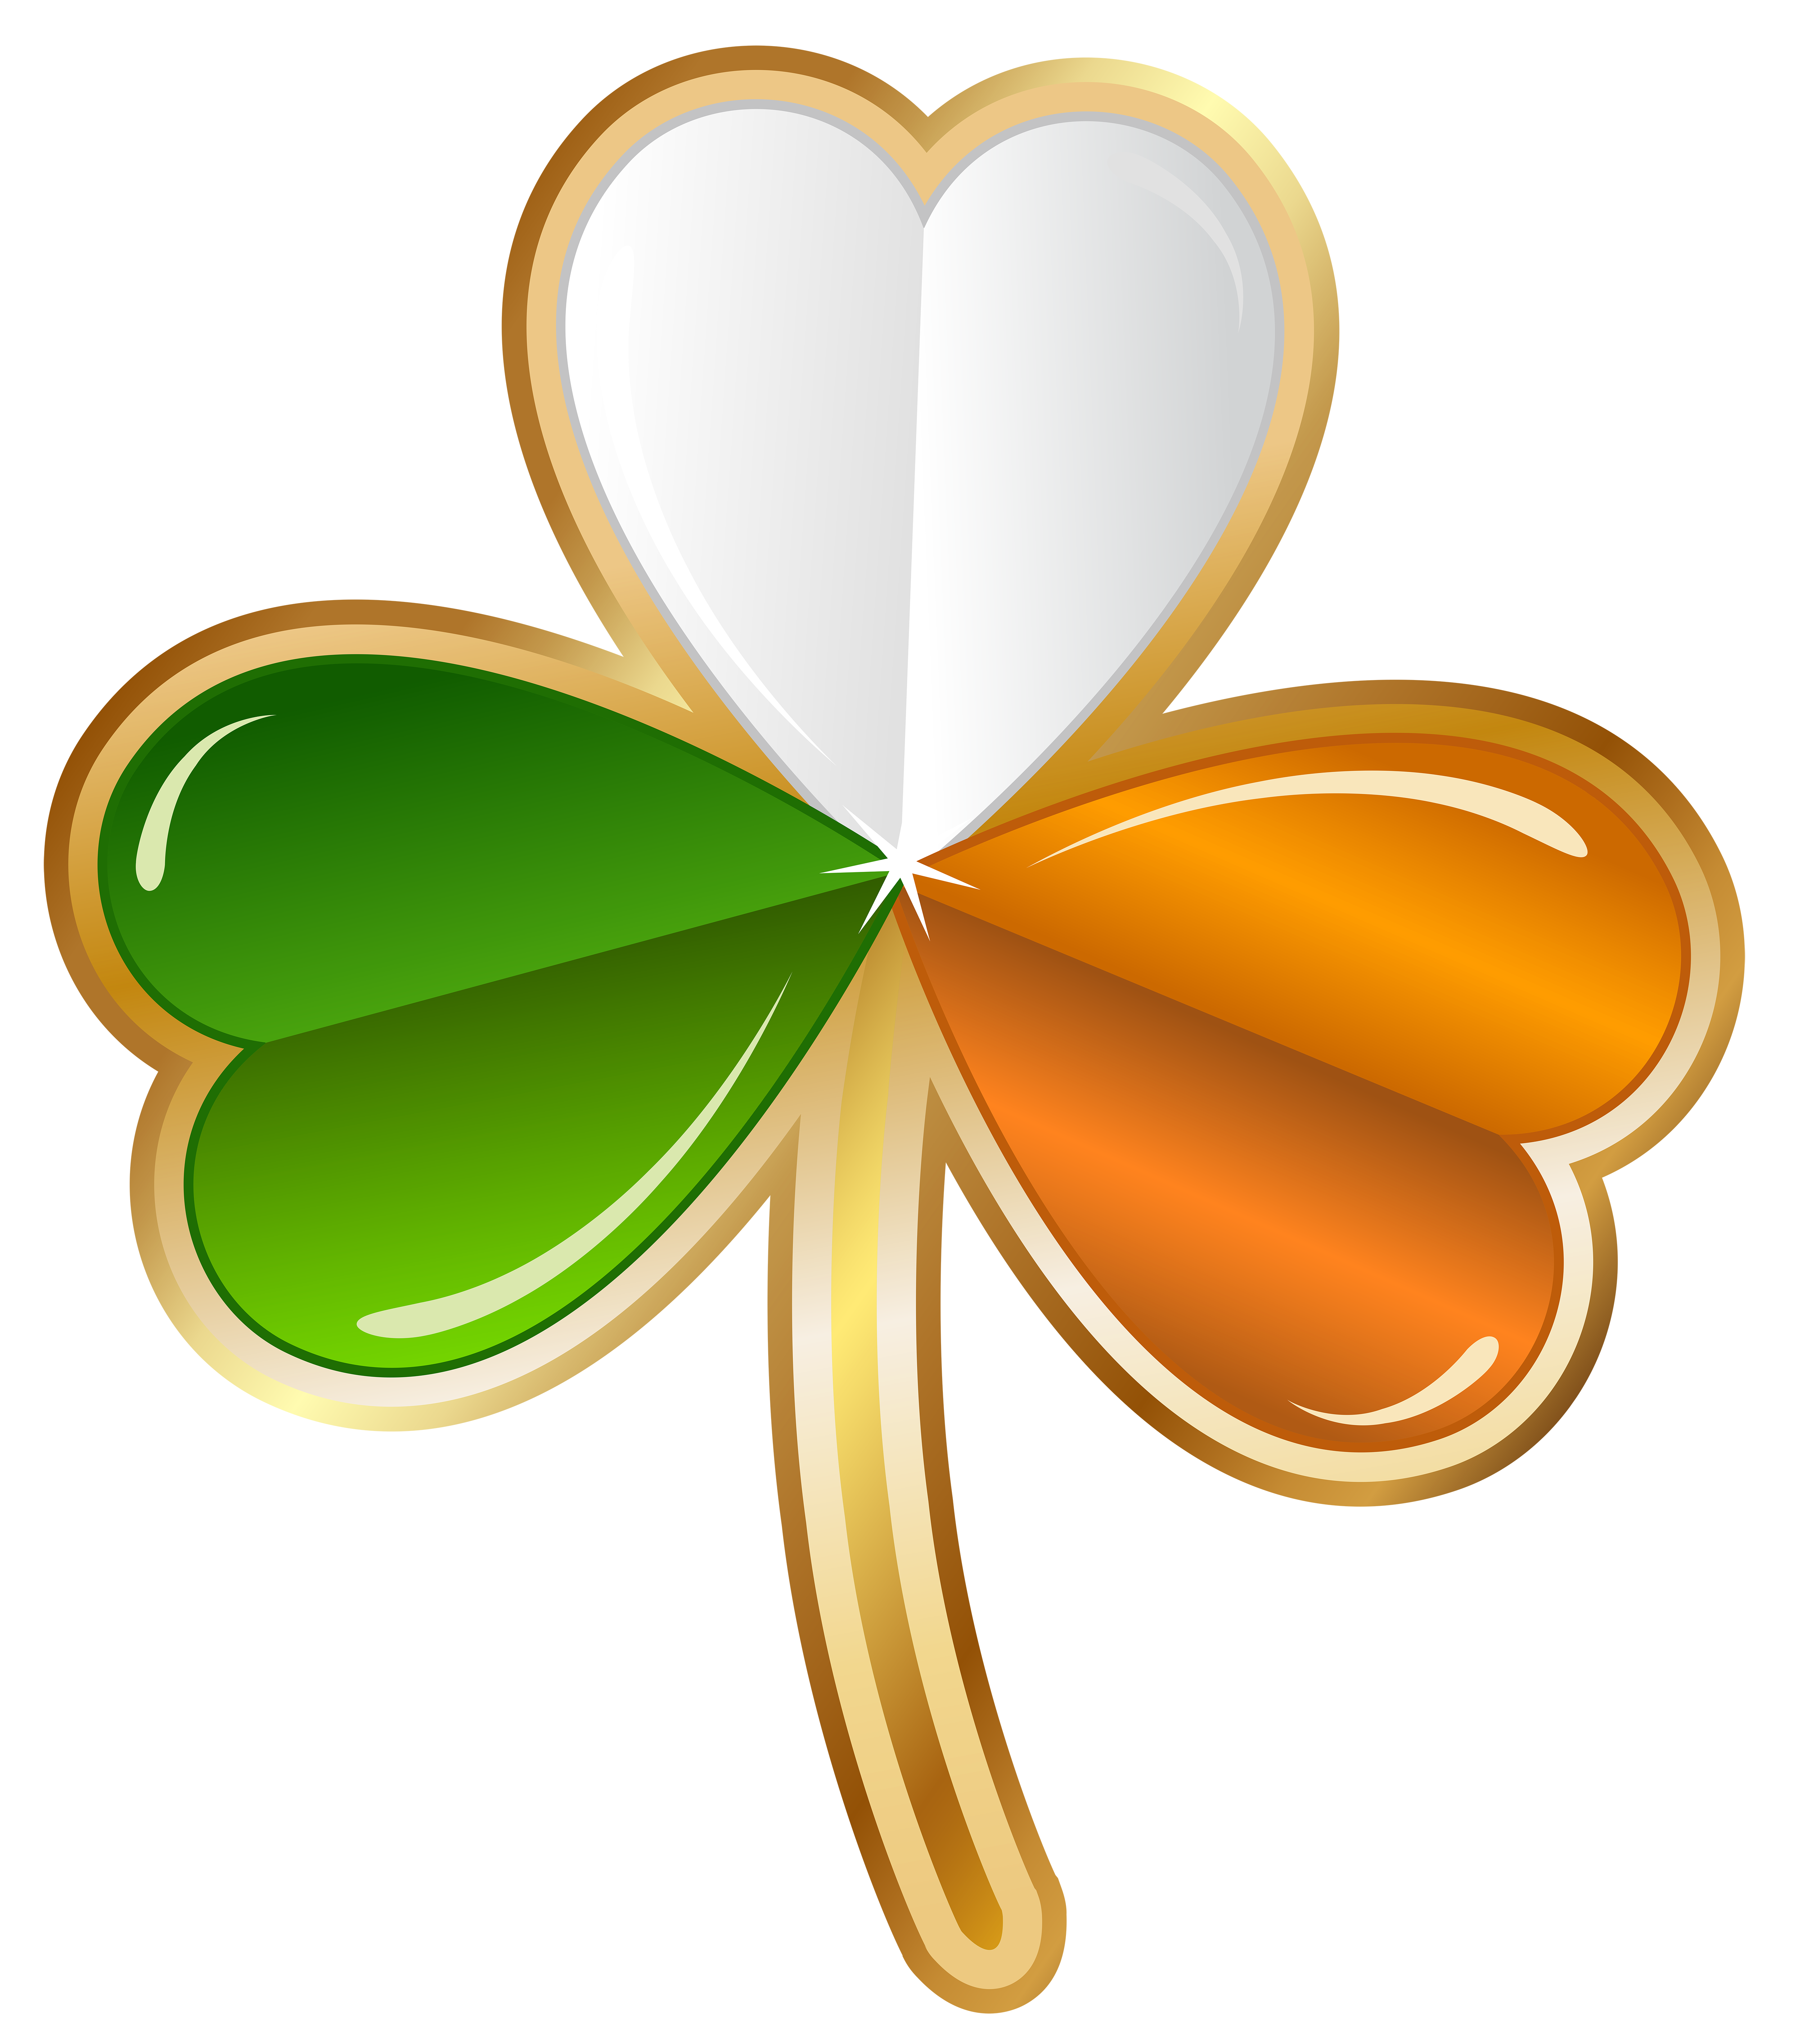 Yellow clipart shamrock Full size Image St View